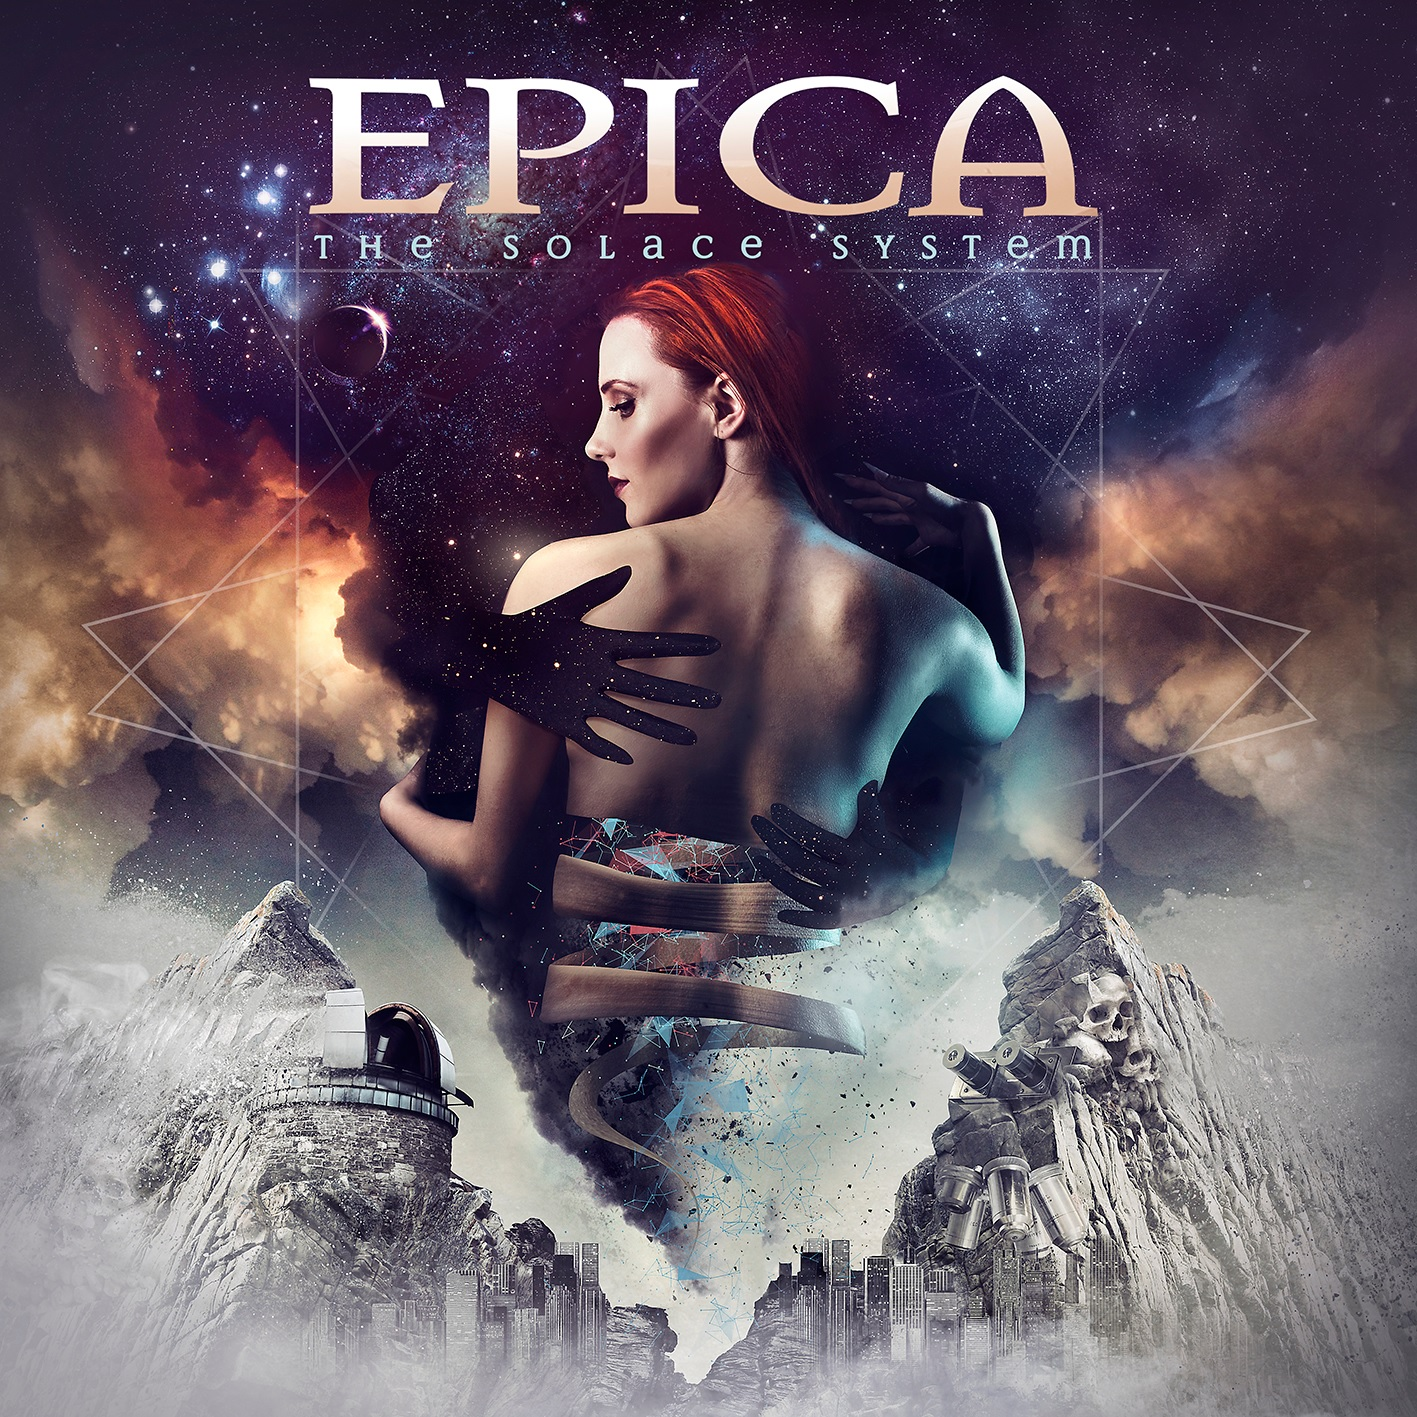 Epica - The Solace System, Epica, Nuclear Blast, symphonic metal, The Holographic Principle, Top 10 Songs Of The Week, playlist